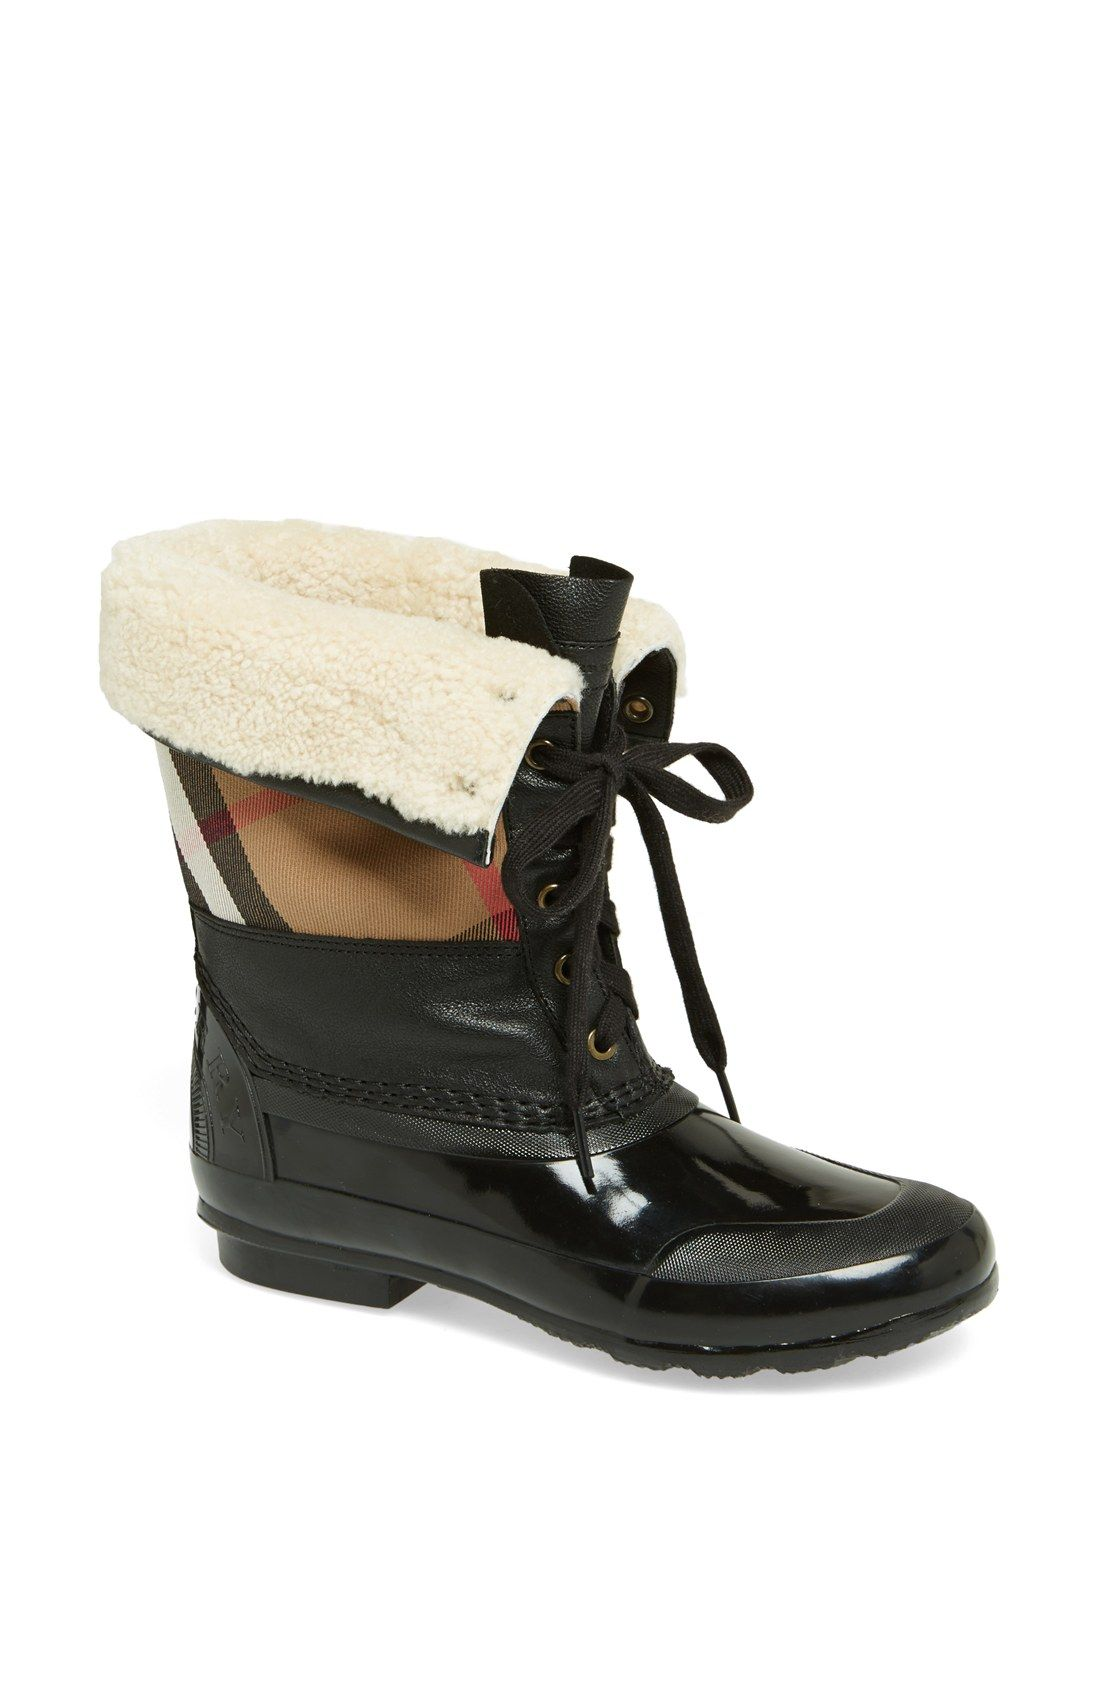 burberry all weather boots